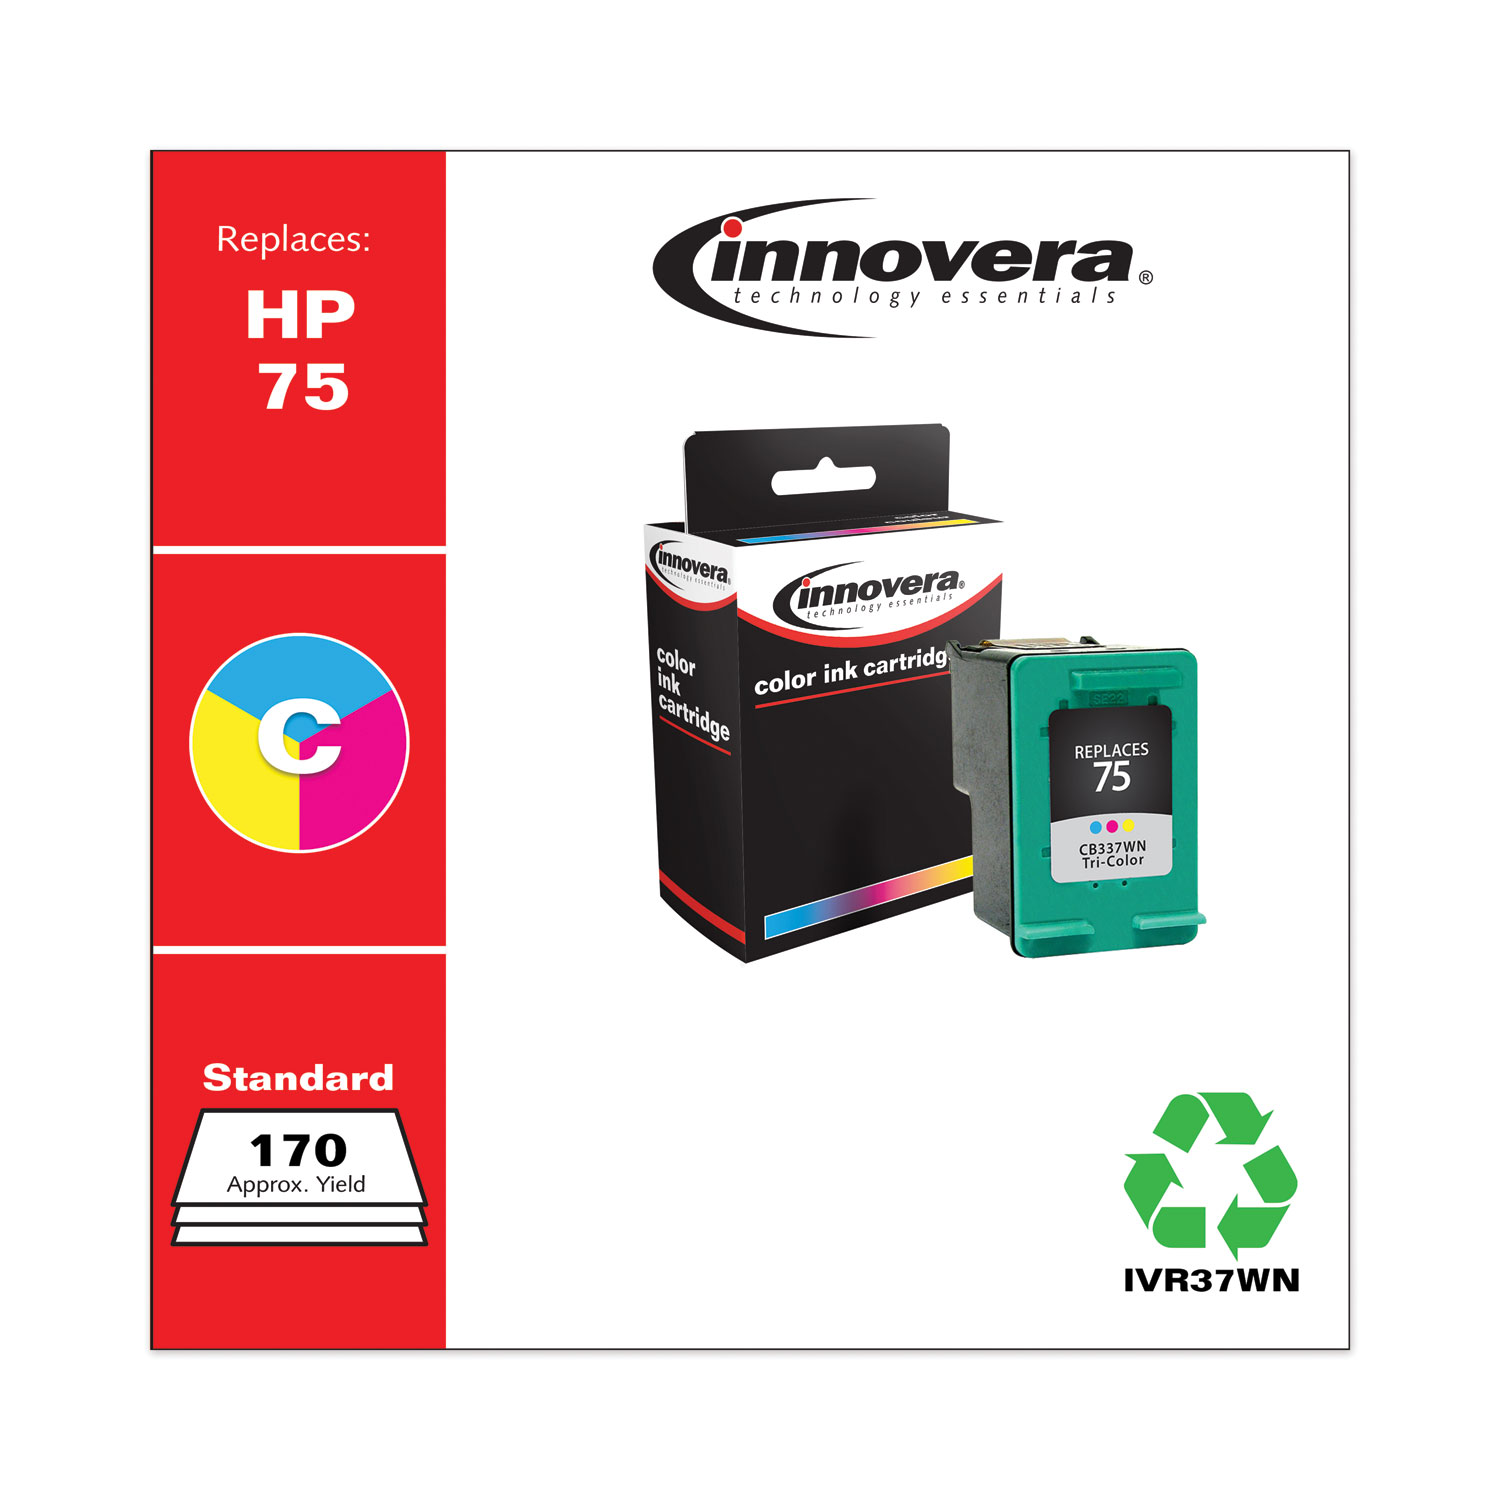 Remanufactured Tri-Color Ink, Replacement for HP 75 (CB337WN), 170 Page-Yield IVR37WN